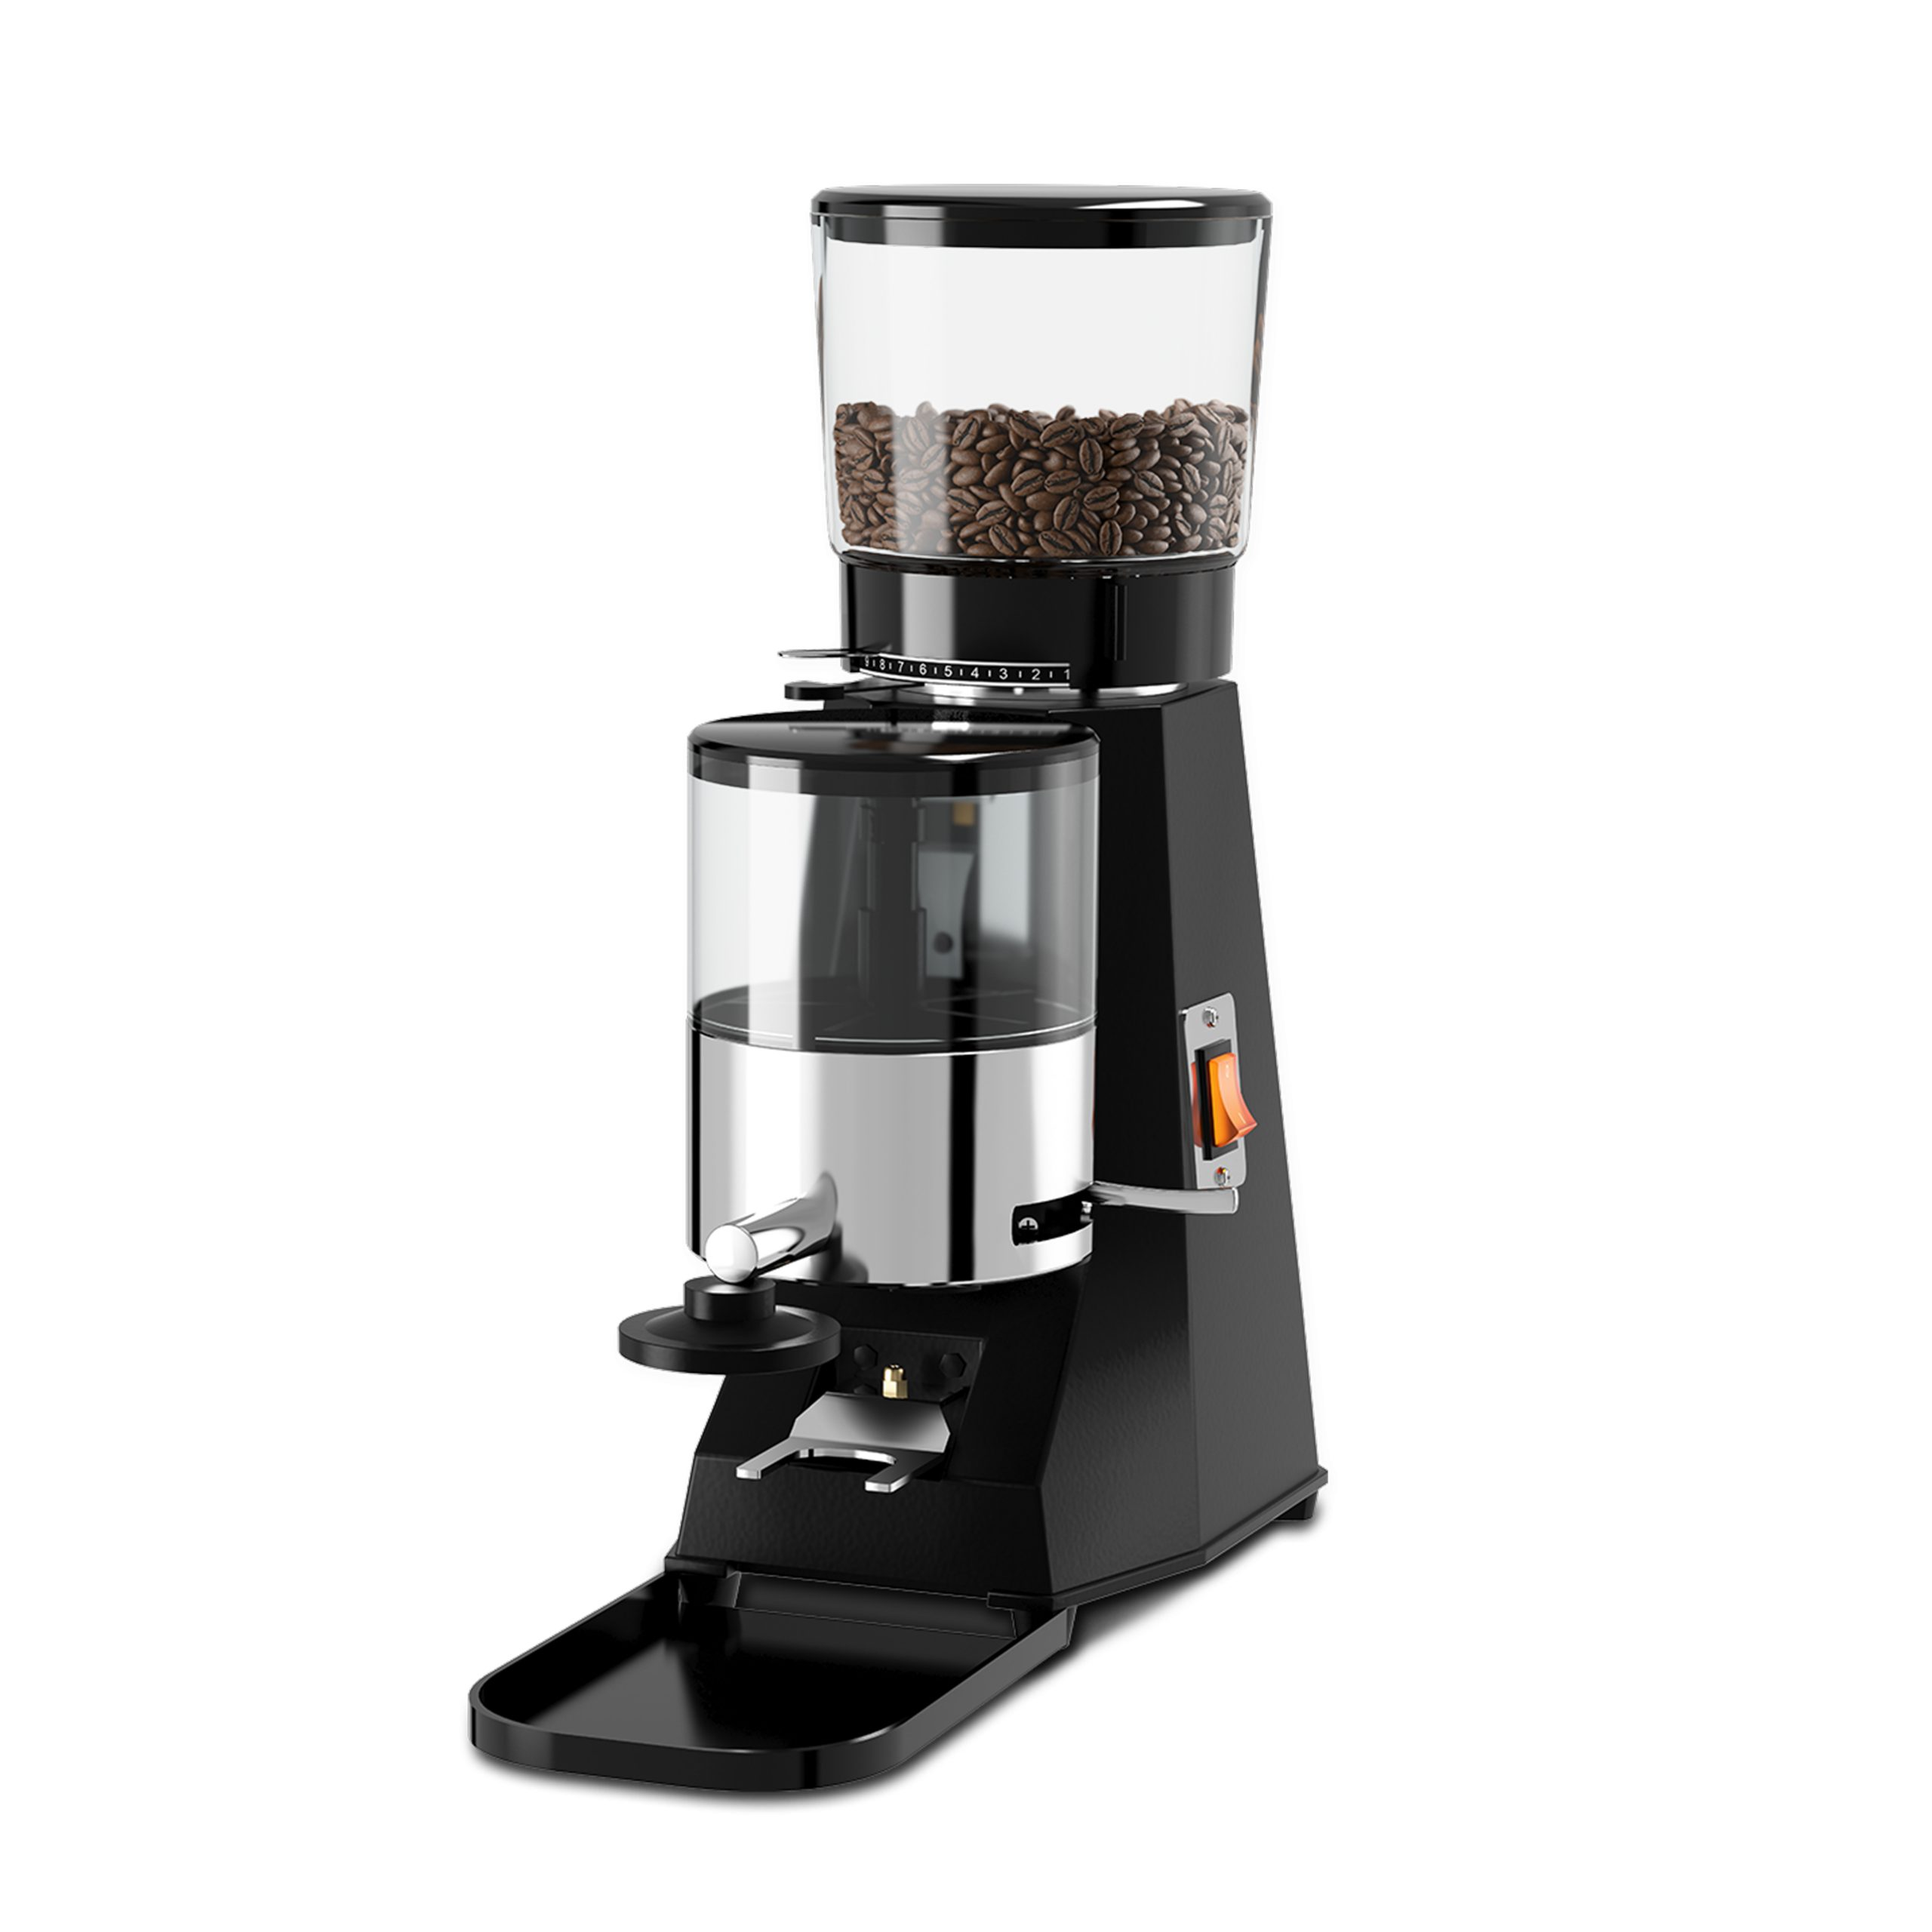 Anfim Best grind on demand espresso grinder